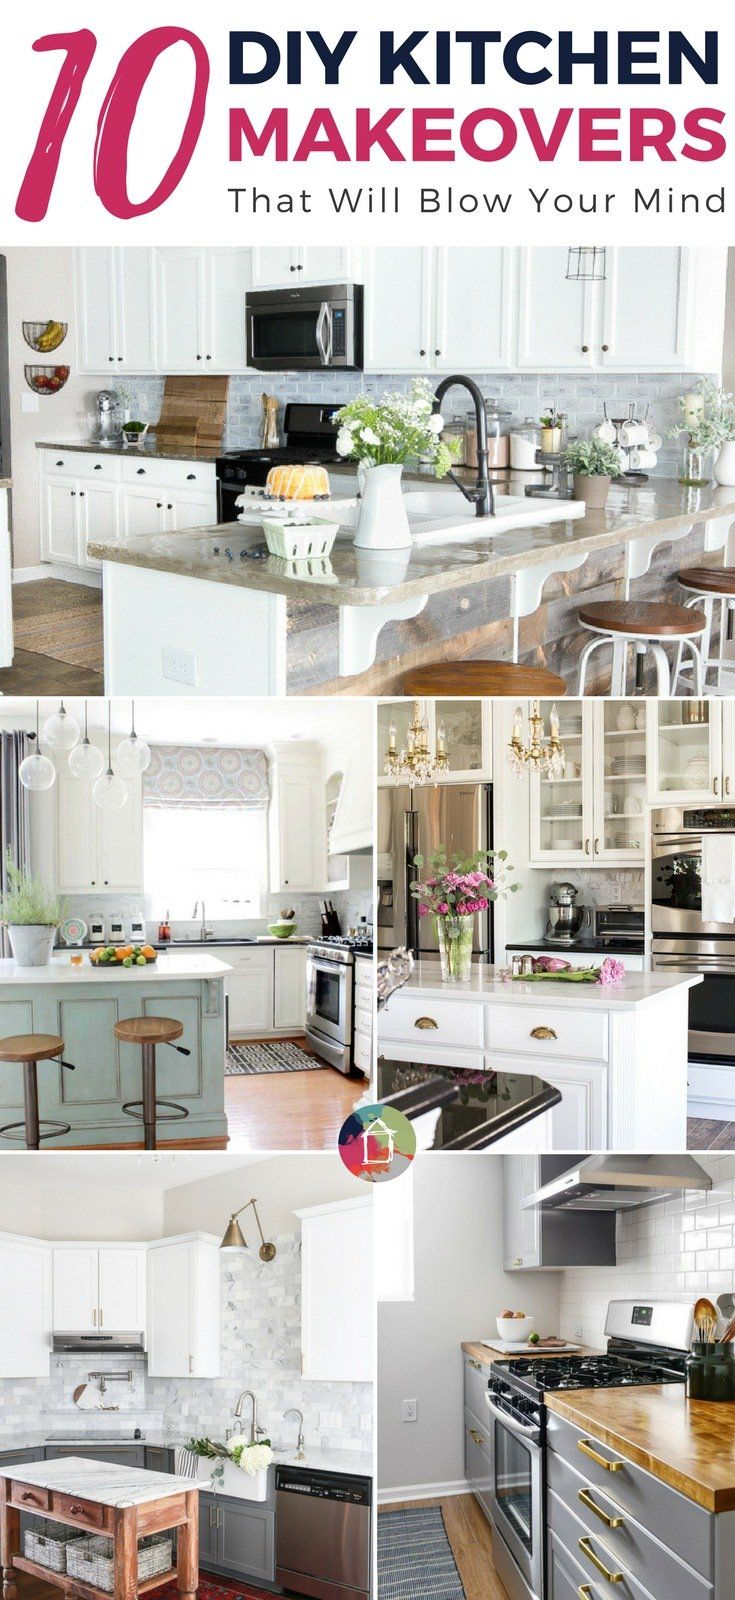 diy kitchen makeovers that will blow your mind kitchen